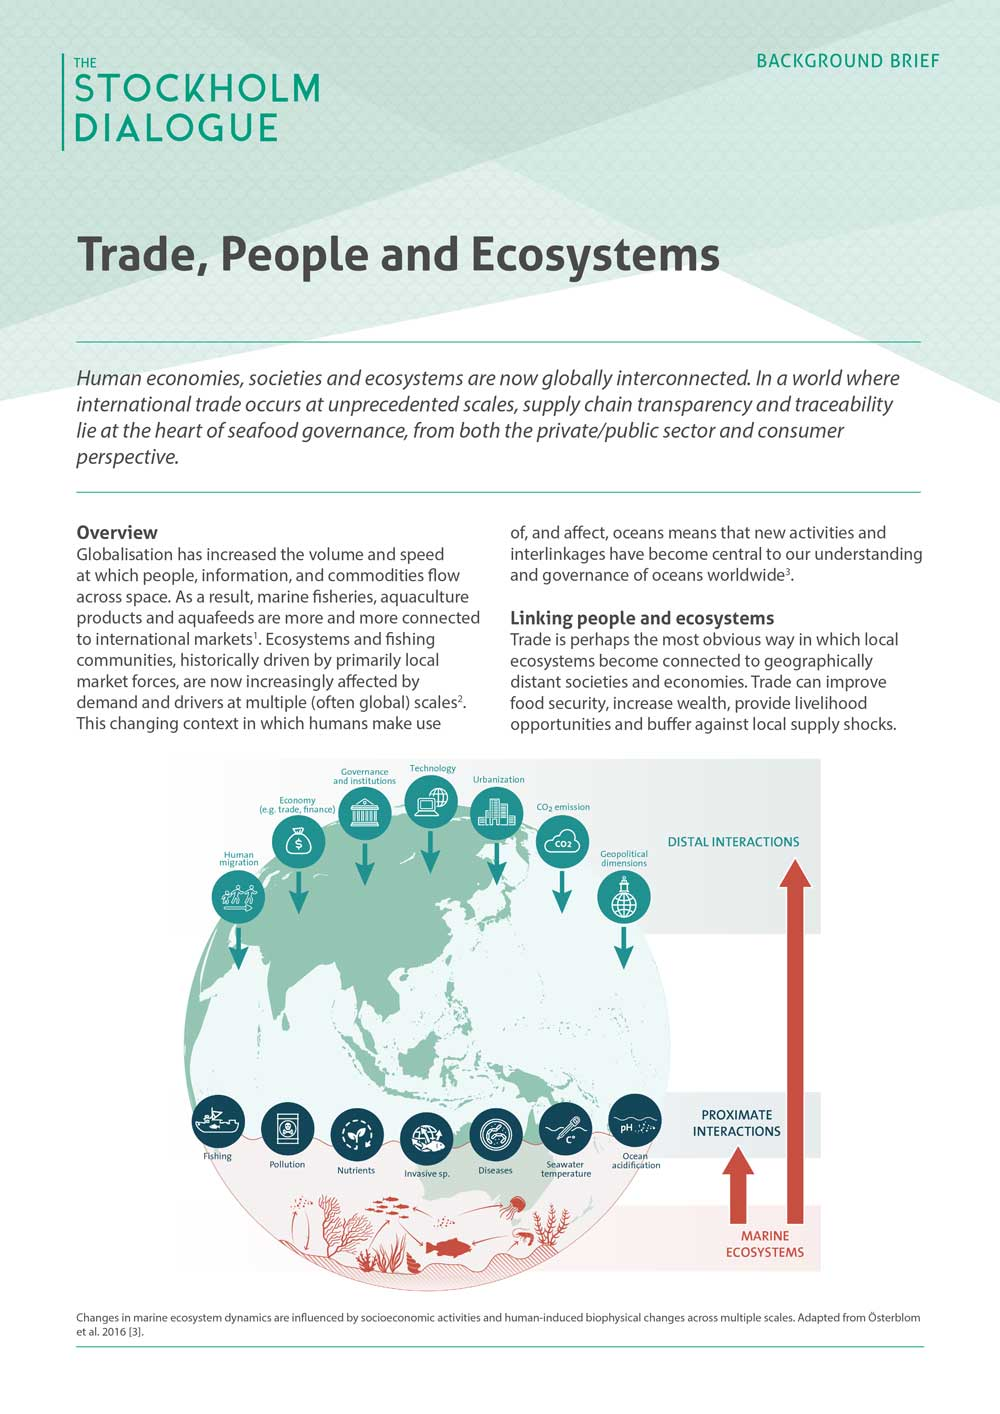 Trade, People and Ecosystems